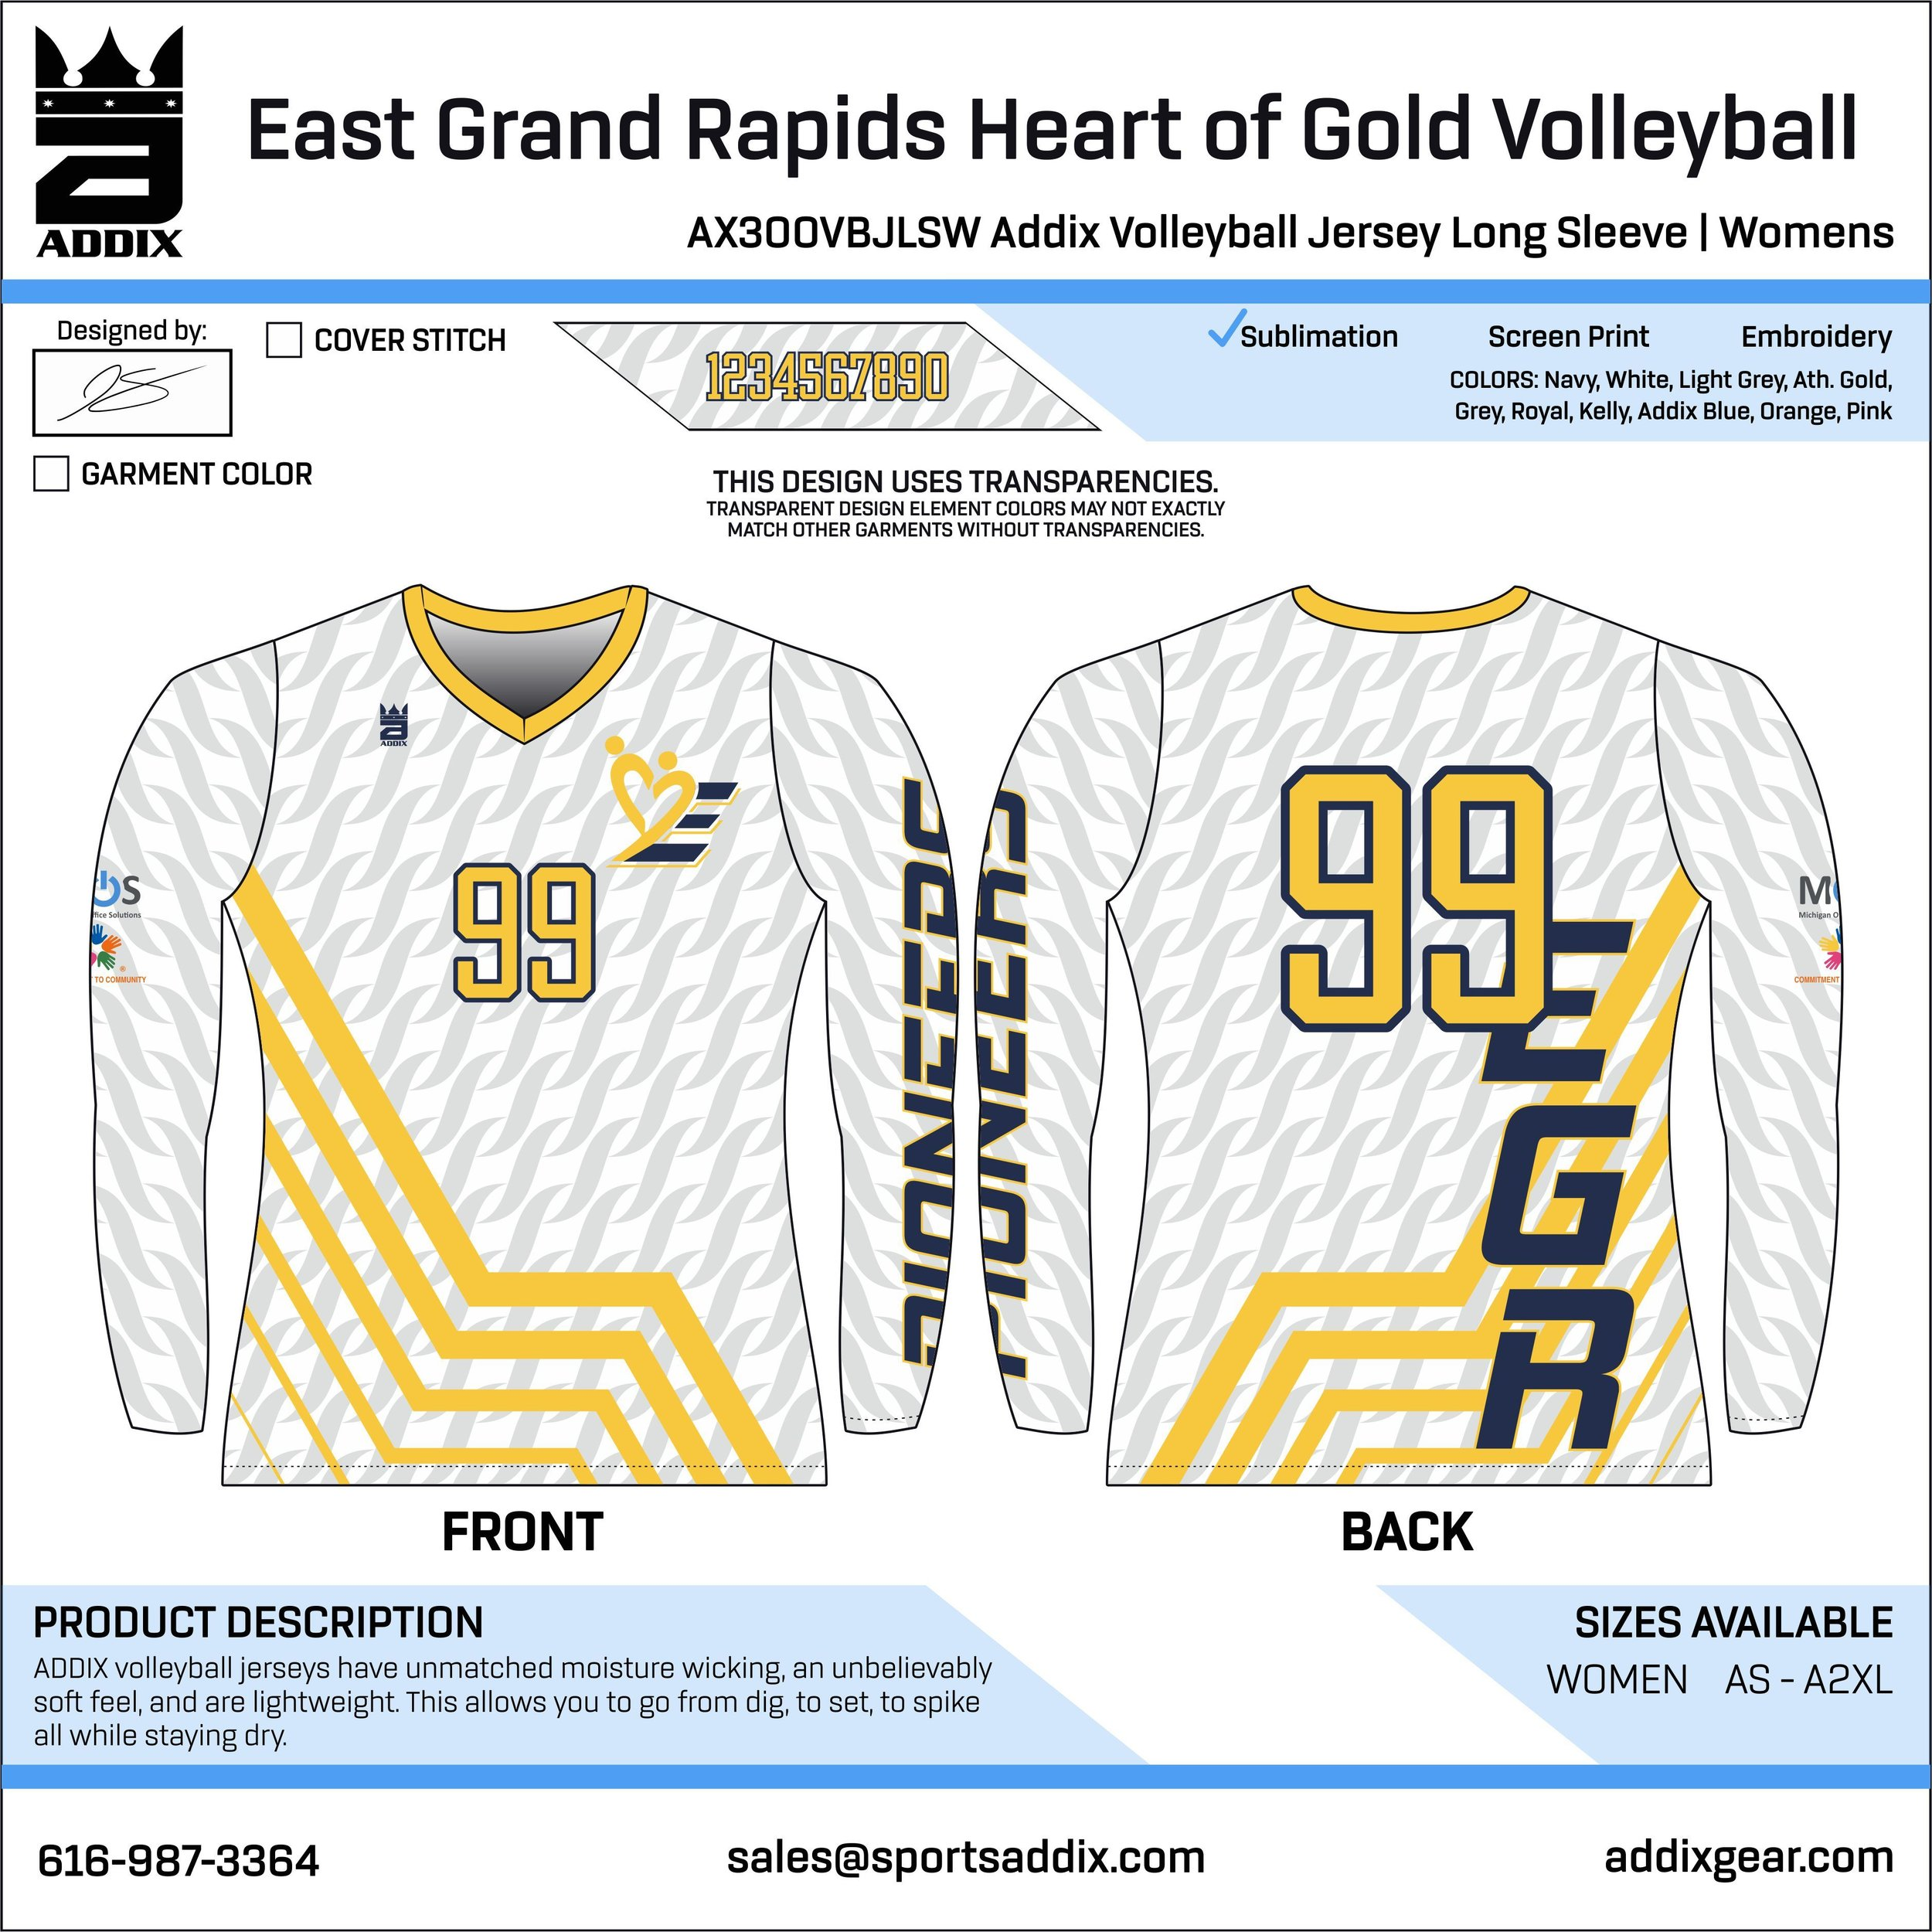 East Grand Rapids Heart of Gold Volleyball_2018_8-22_JE_LS Volleyball Jersey V3.jpg